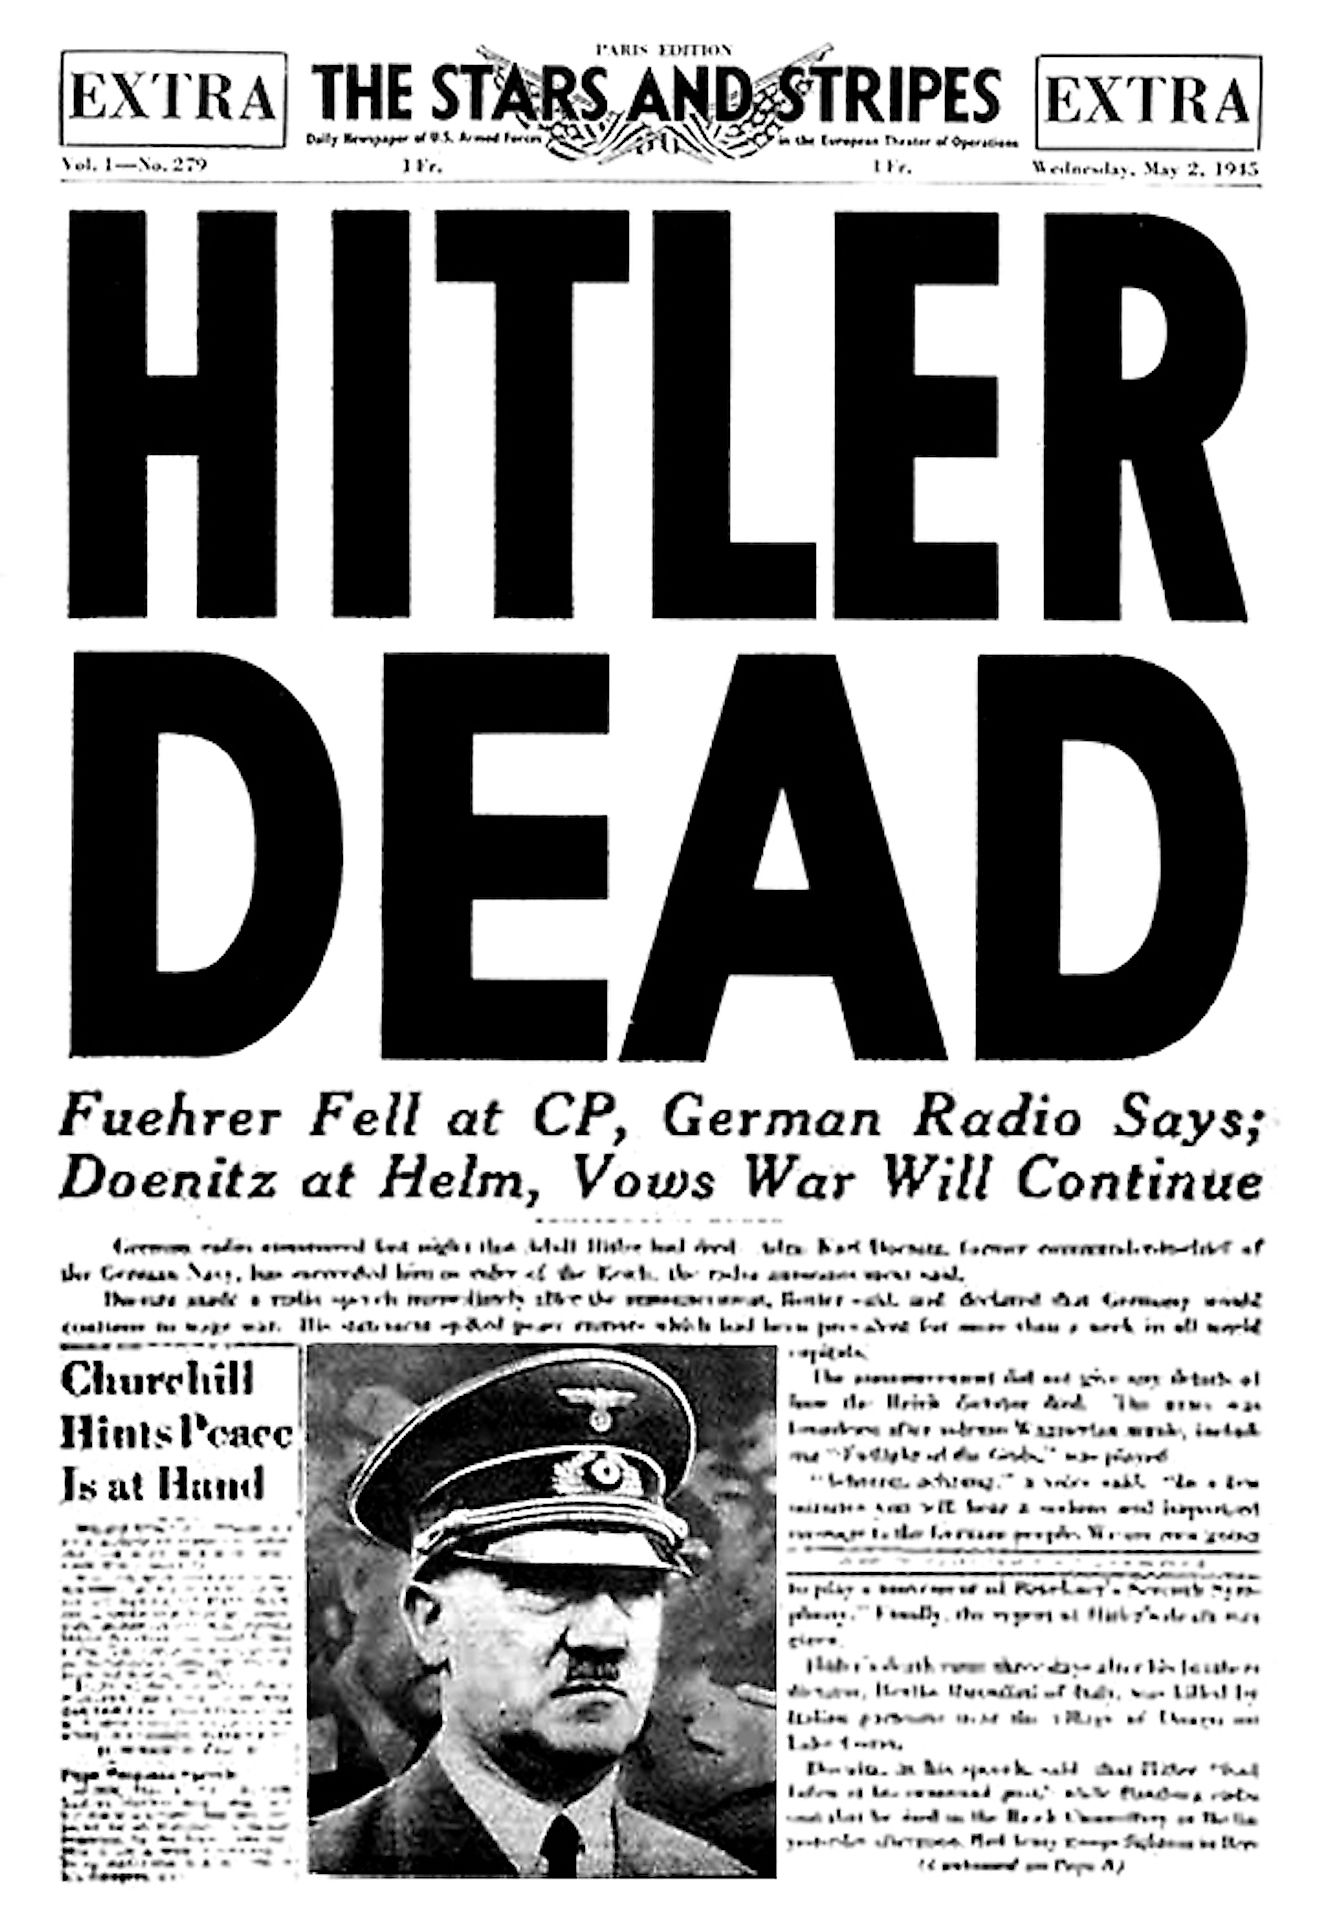 Although there were several attempts to assassinate him, Hitler eventually died by committing suicide. Image credit: A headline in the U.S. Army newspaper Stars and Stripes announcing Hitler's death/Bundesarchiv, Bild/Public domain